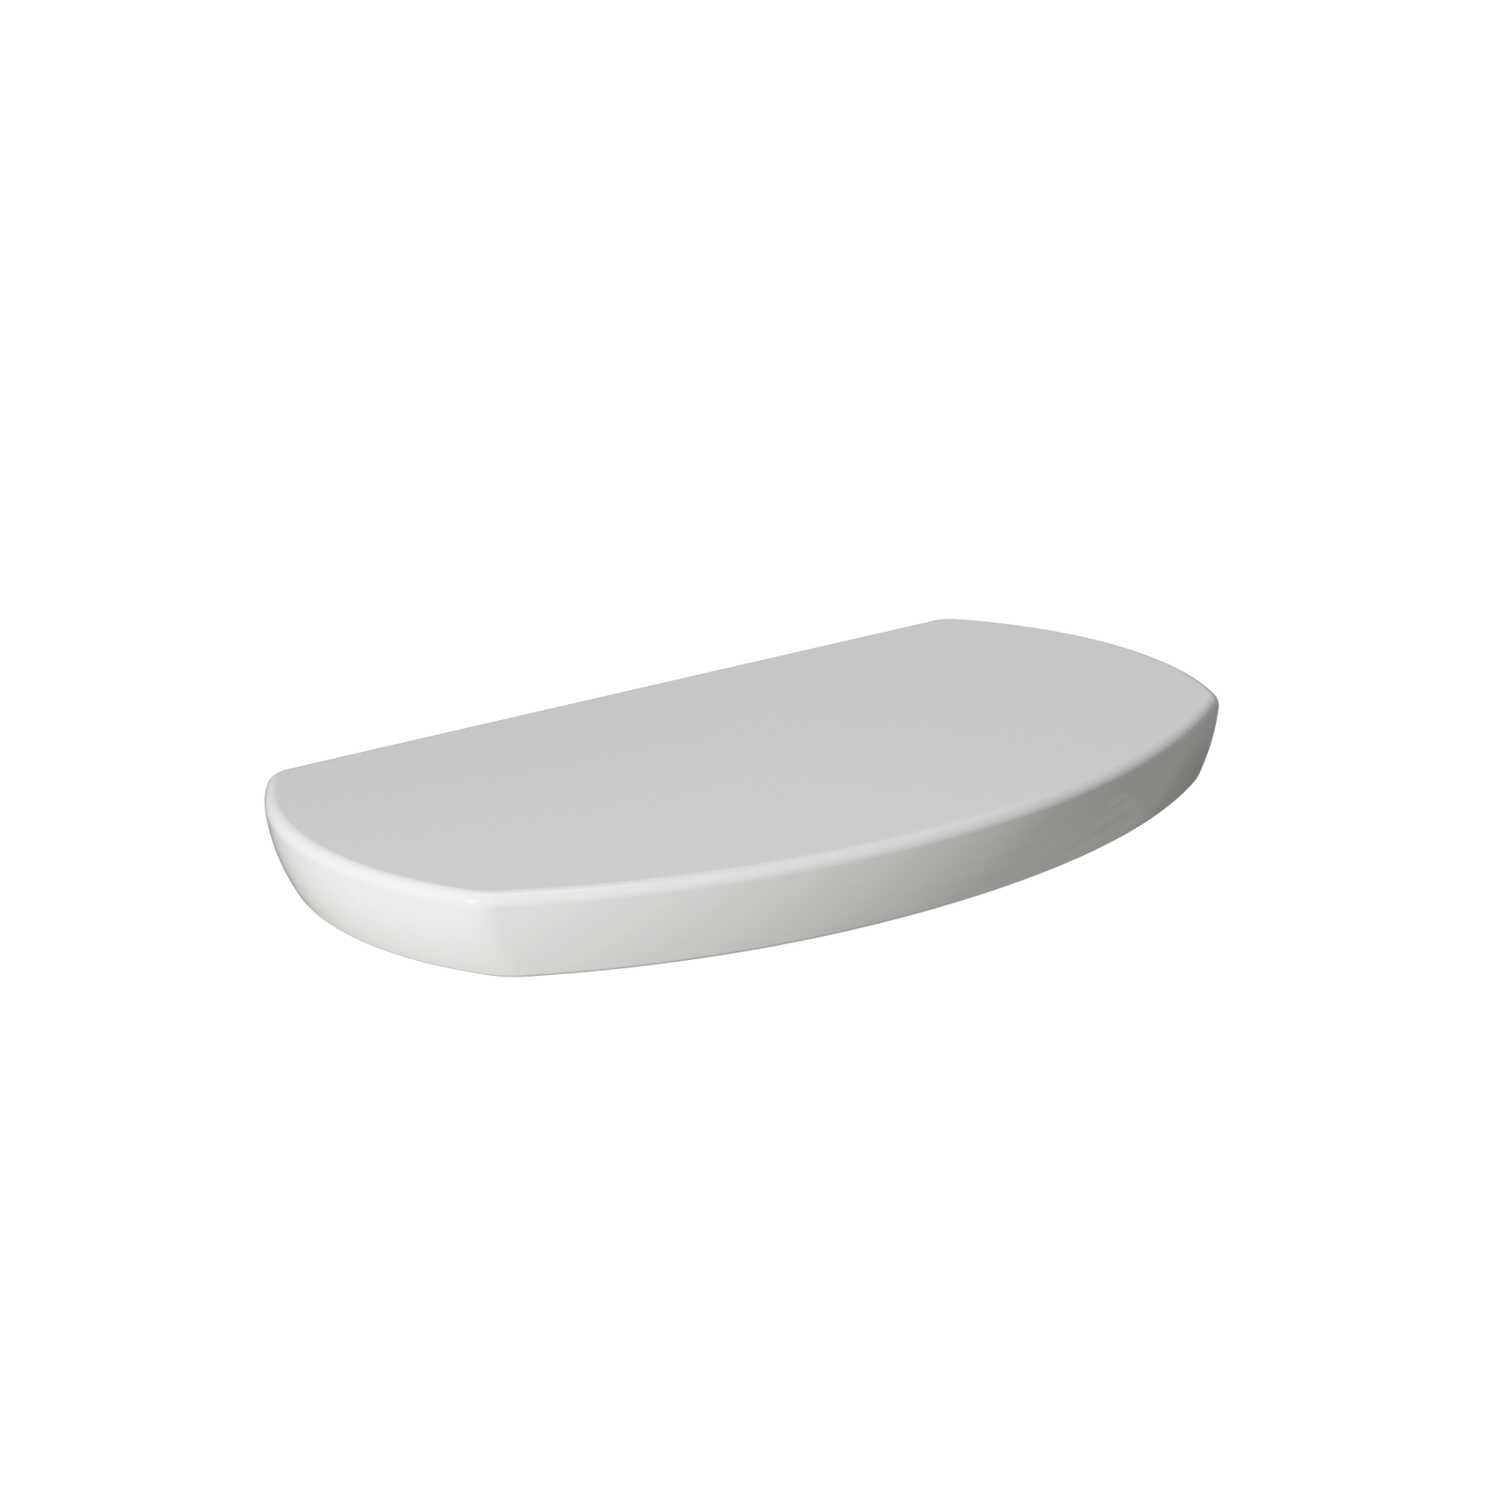 American Standard  Toilet Tank Lid  White  For Cadet Toilet Tanks